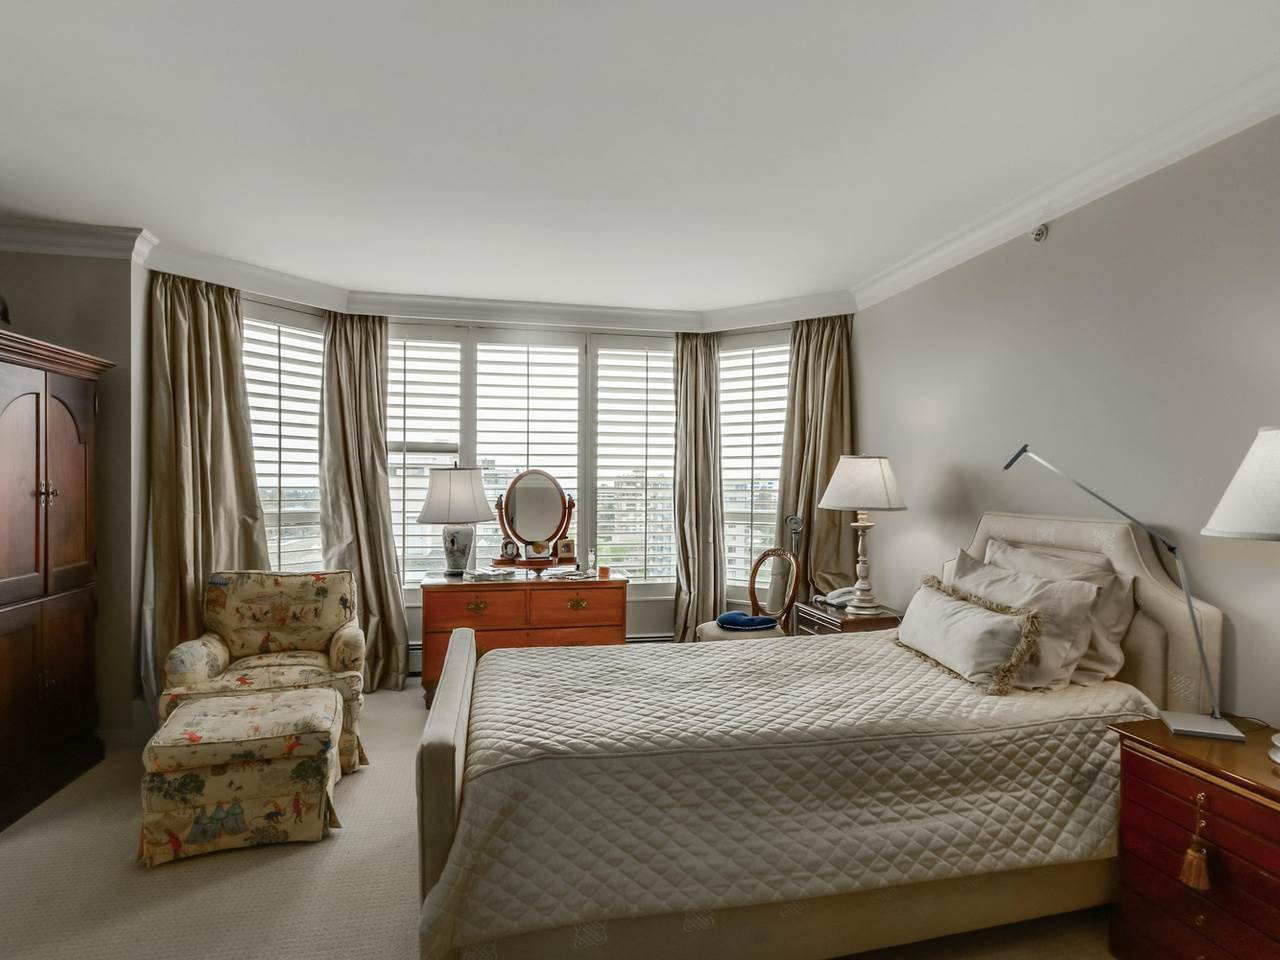 """Photo 13: Photos: PH1 2108 W 38TH Avenue in Vancouver: Kerrisdale Condo for sale in """"THE WILSHIRE"""" (Vancouver West)  : MLS®# R2072443"""